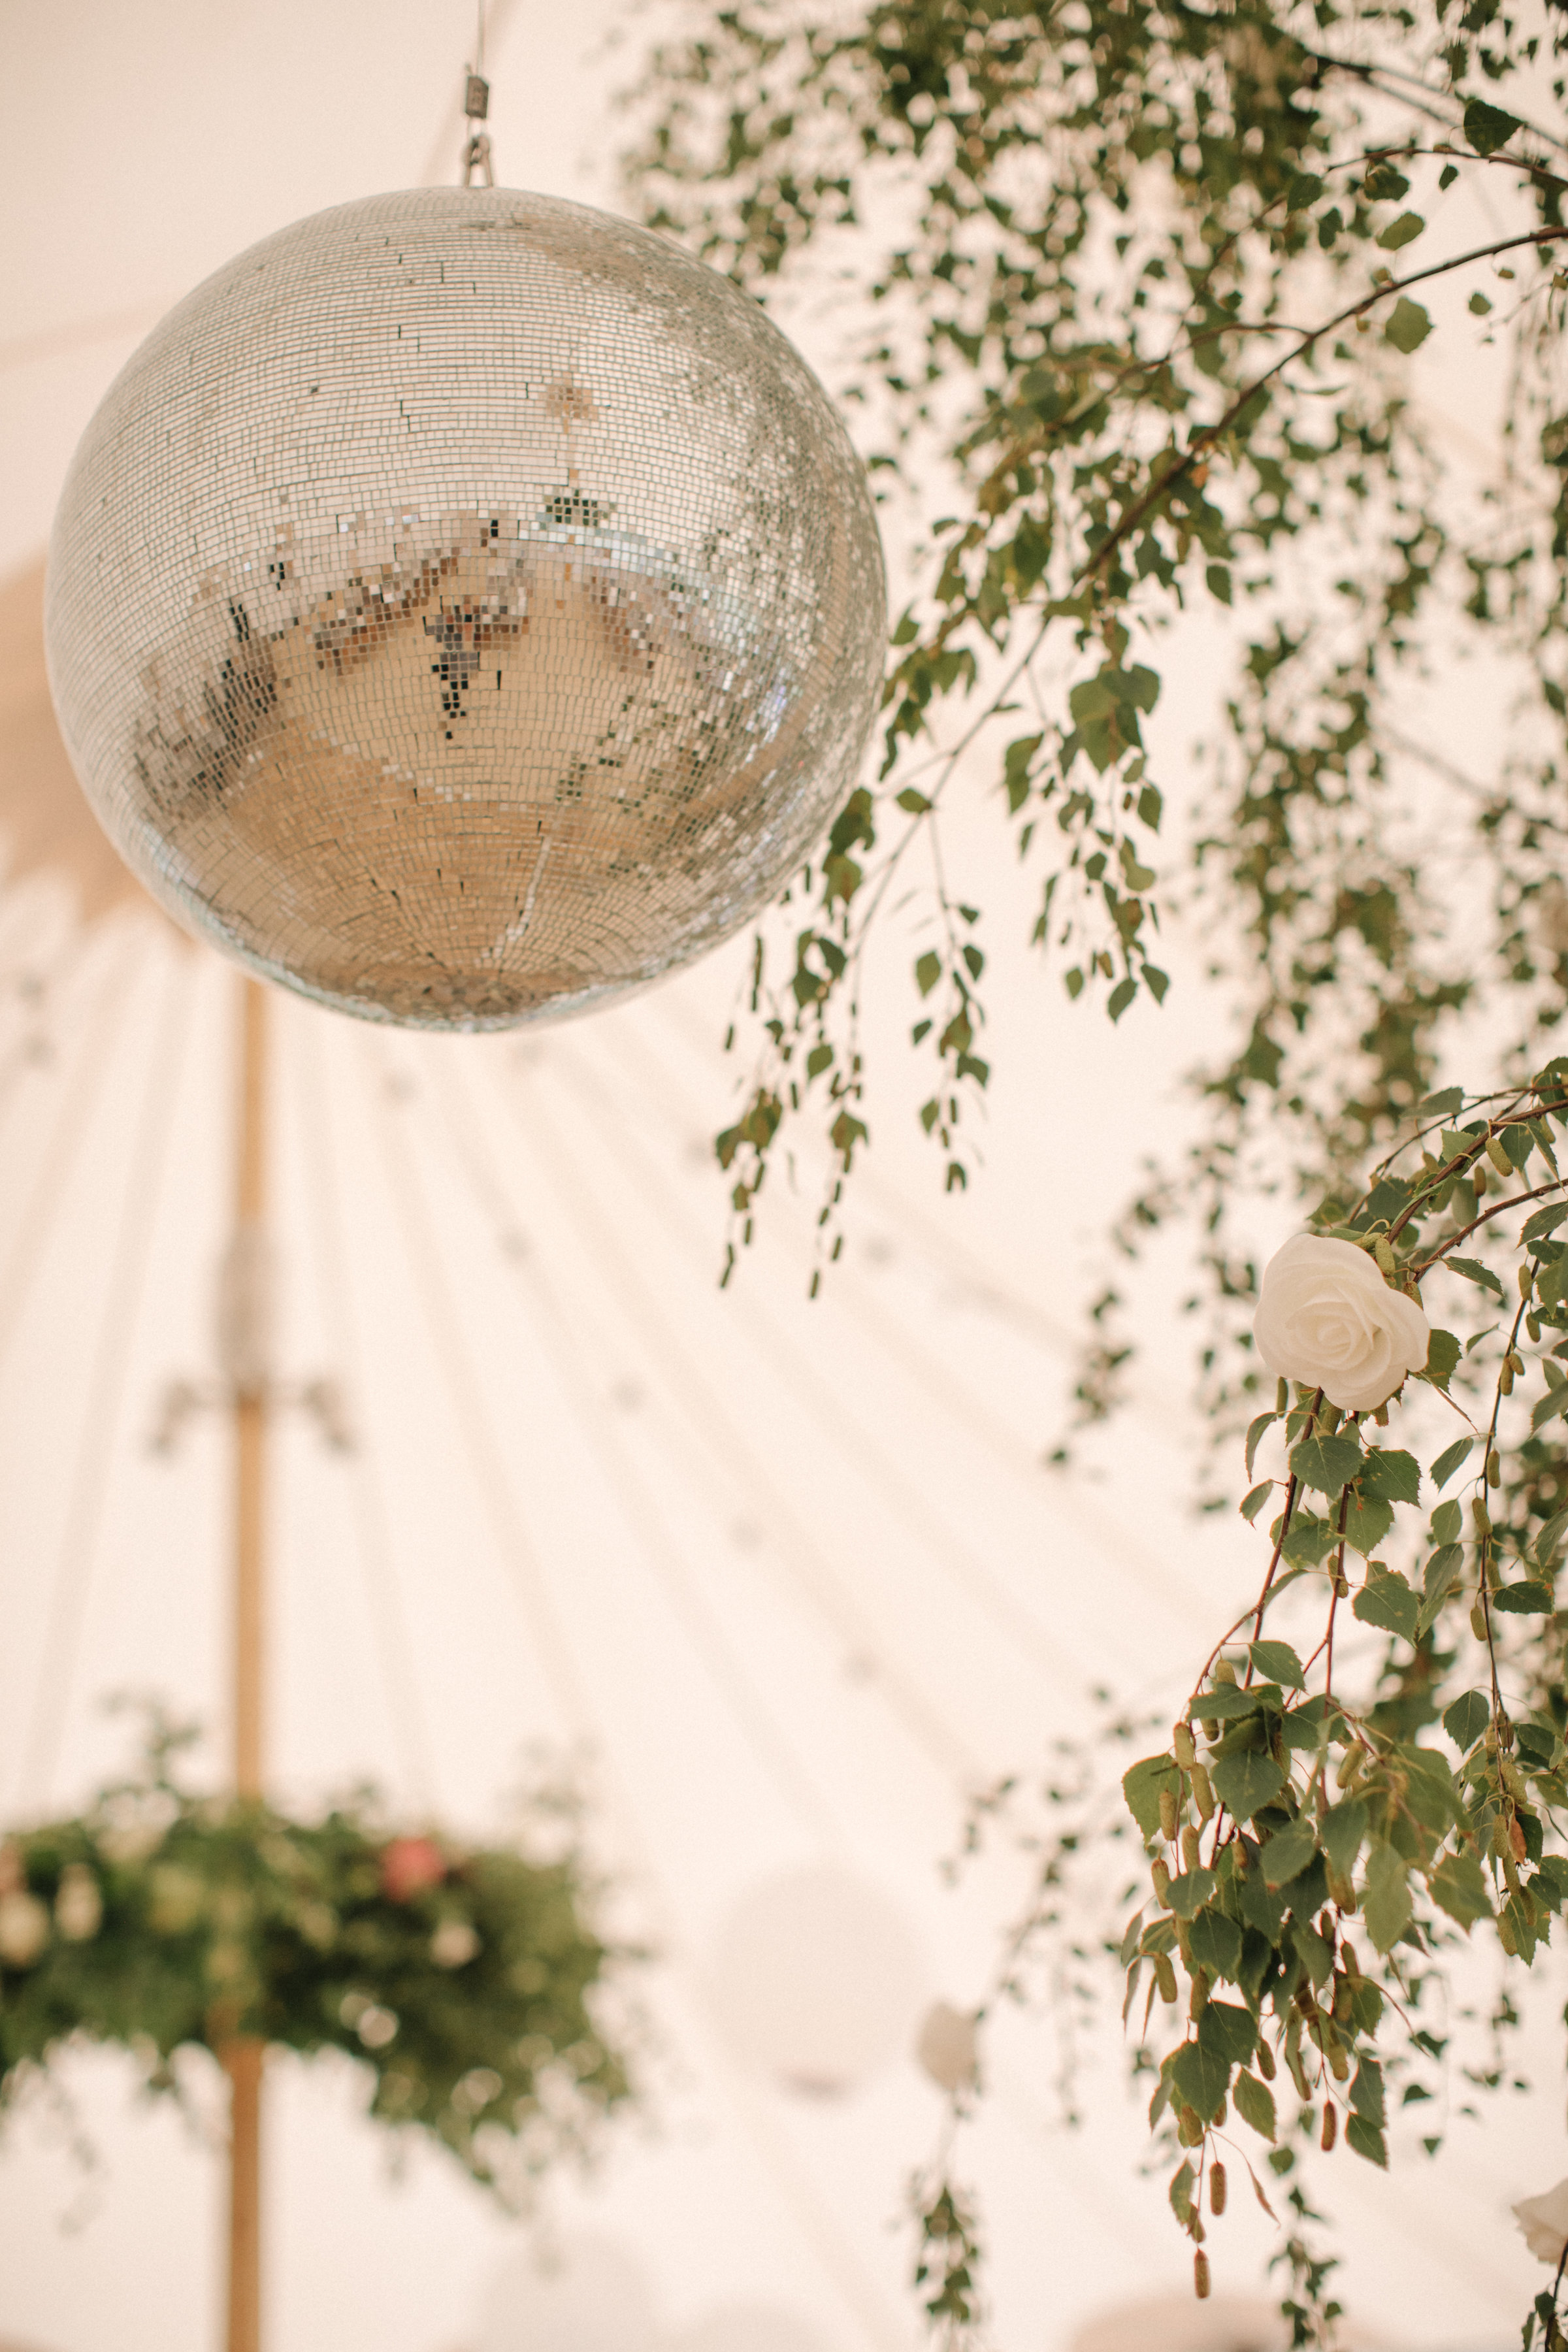 Steph & Ed's PapaKåta Sperry Tent wedding at home in Nottingham captured by M & J Photography: Sperry Tent Mirror Ball